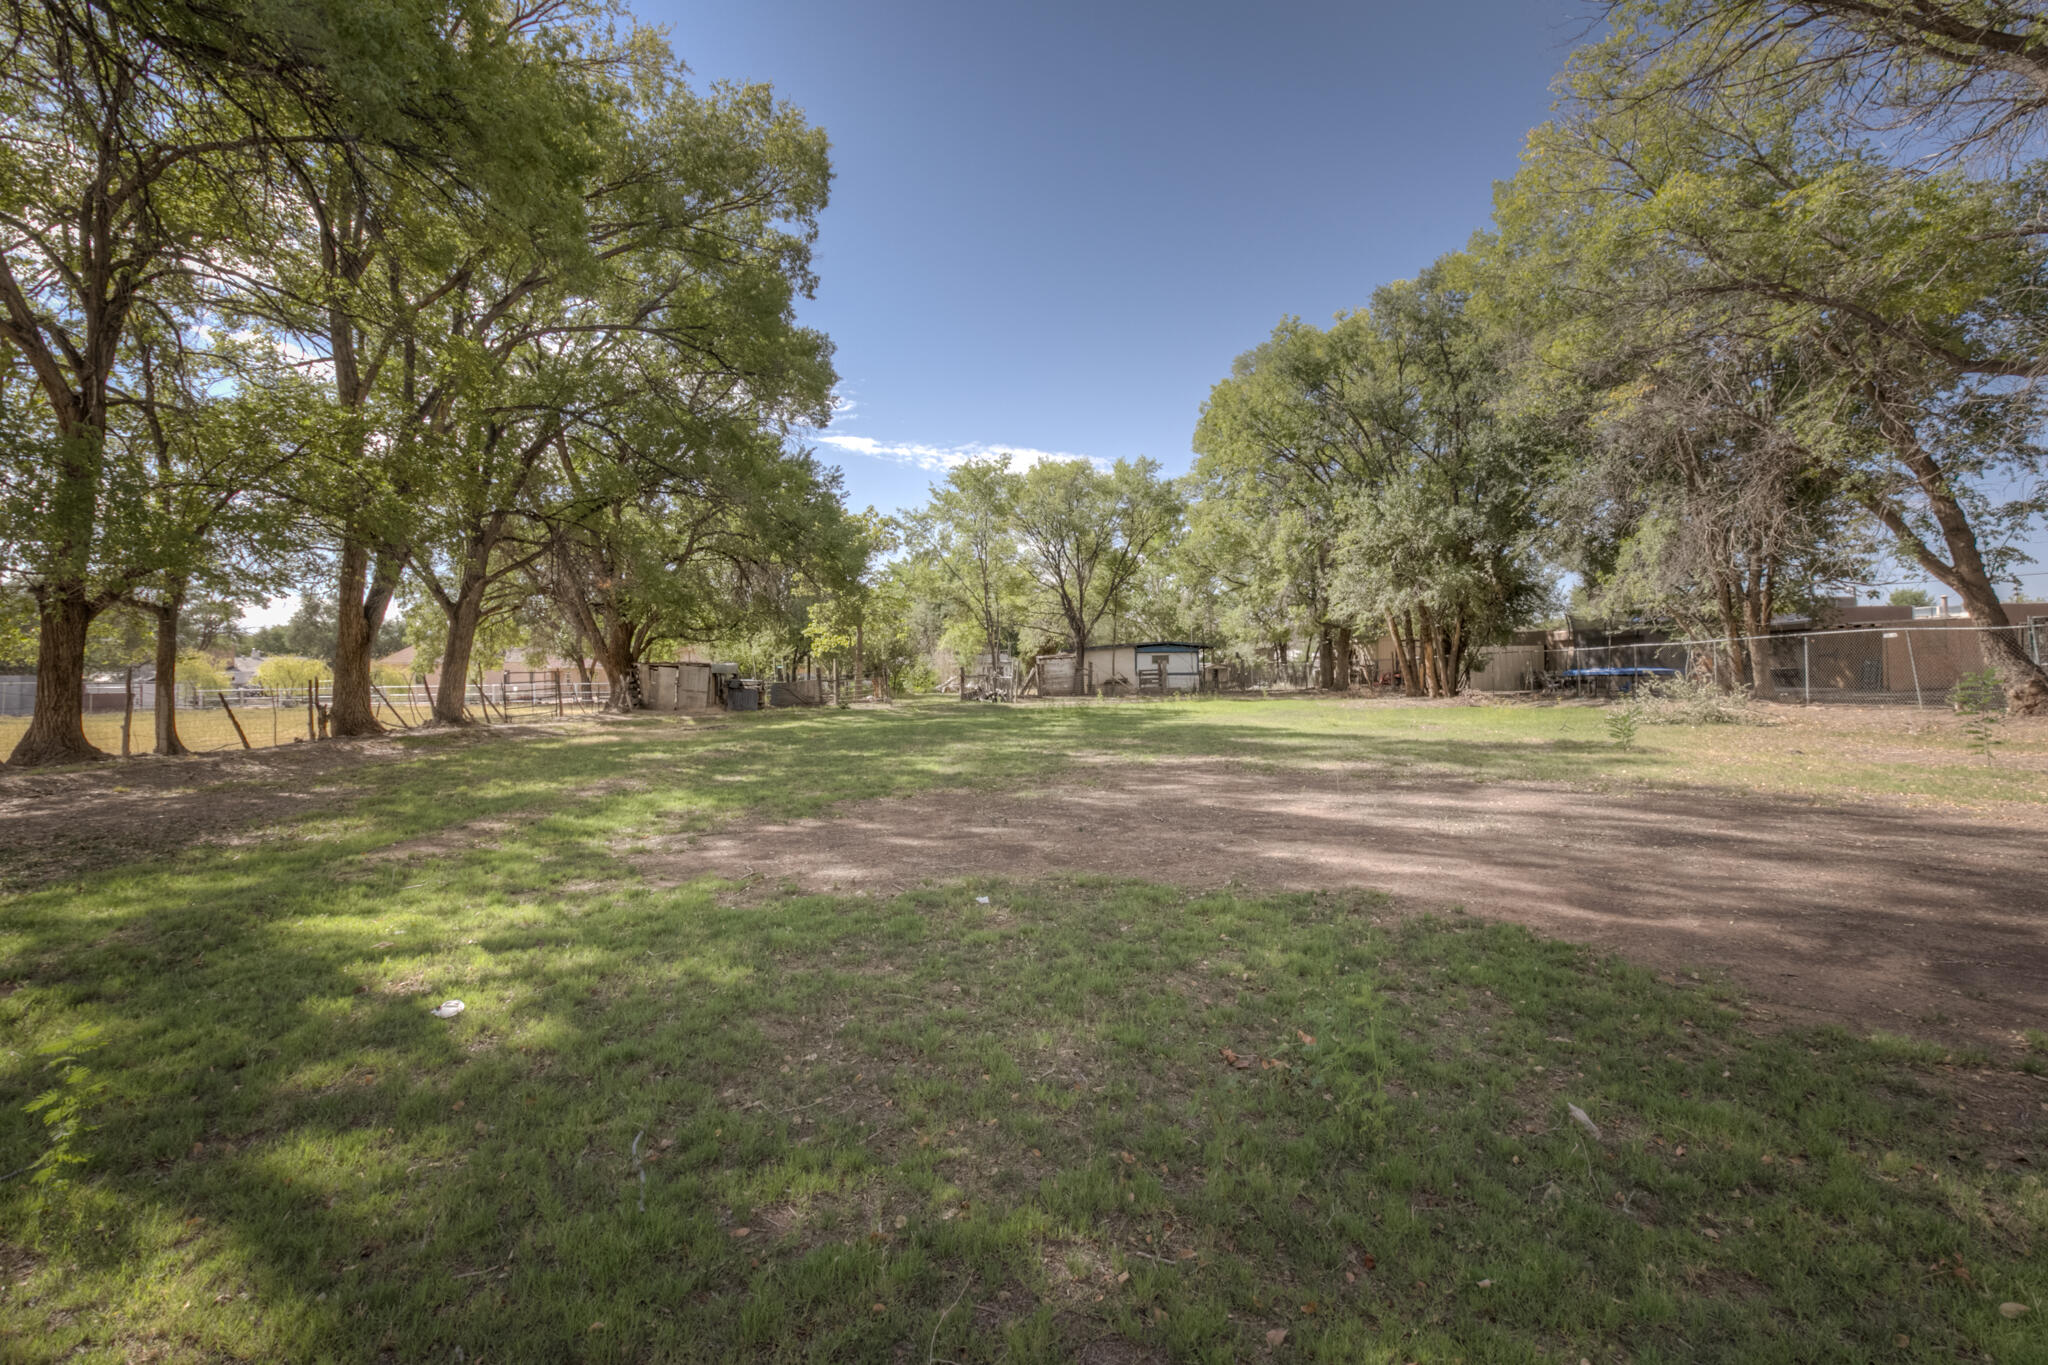 Amazing opportunity to own almost 2 acres in the lush and green South Valley! Ditch water access on property.  Mature trees, fields, pasture, two private courtyards, multiple outbuildings and tons of possibility and potential!